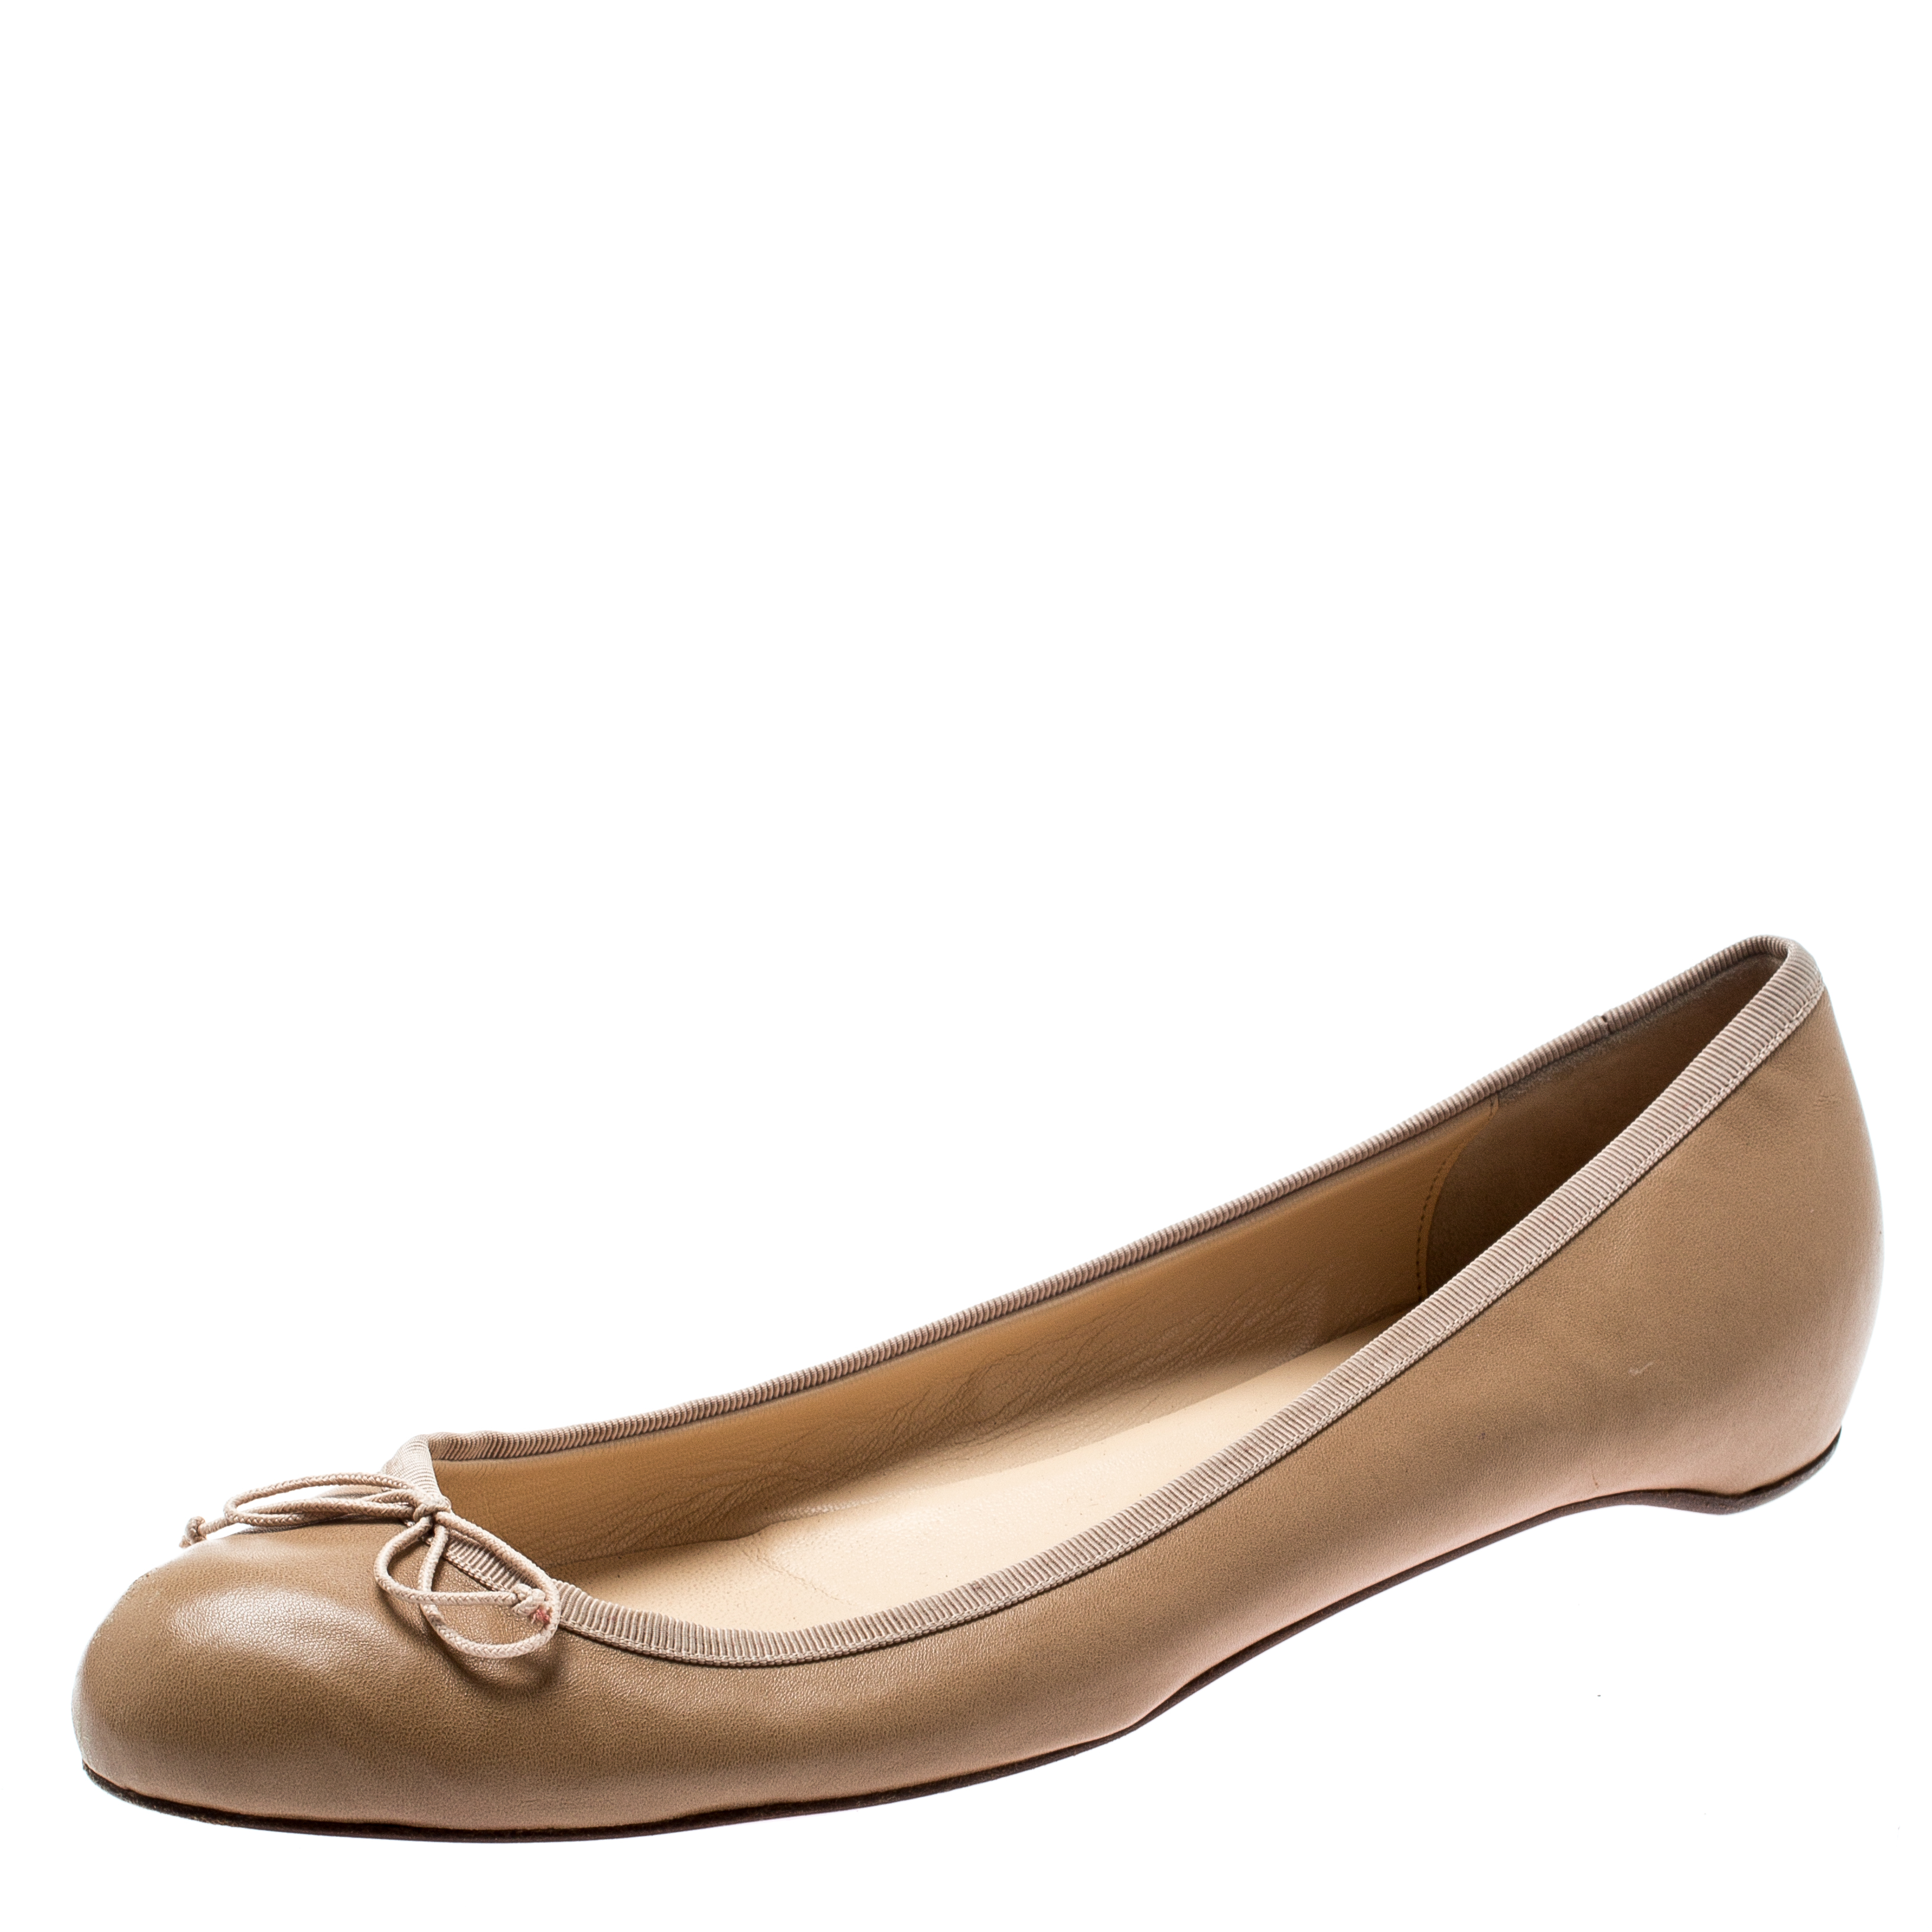 971bb675ef3 Christian Louboutin Beige Leather Bow Ballet Flats Size 40.5